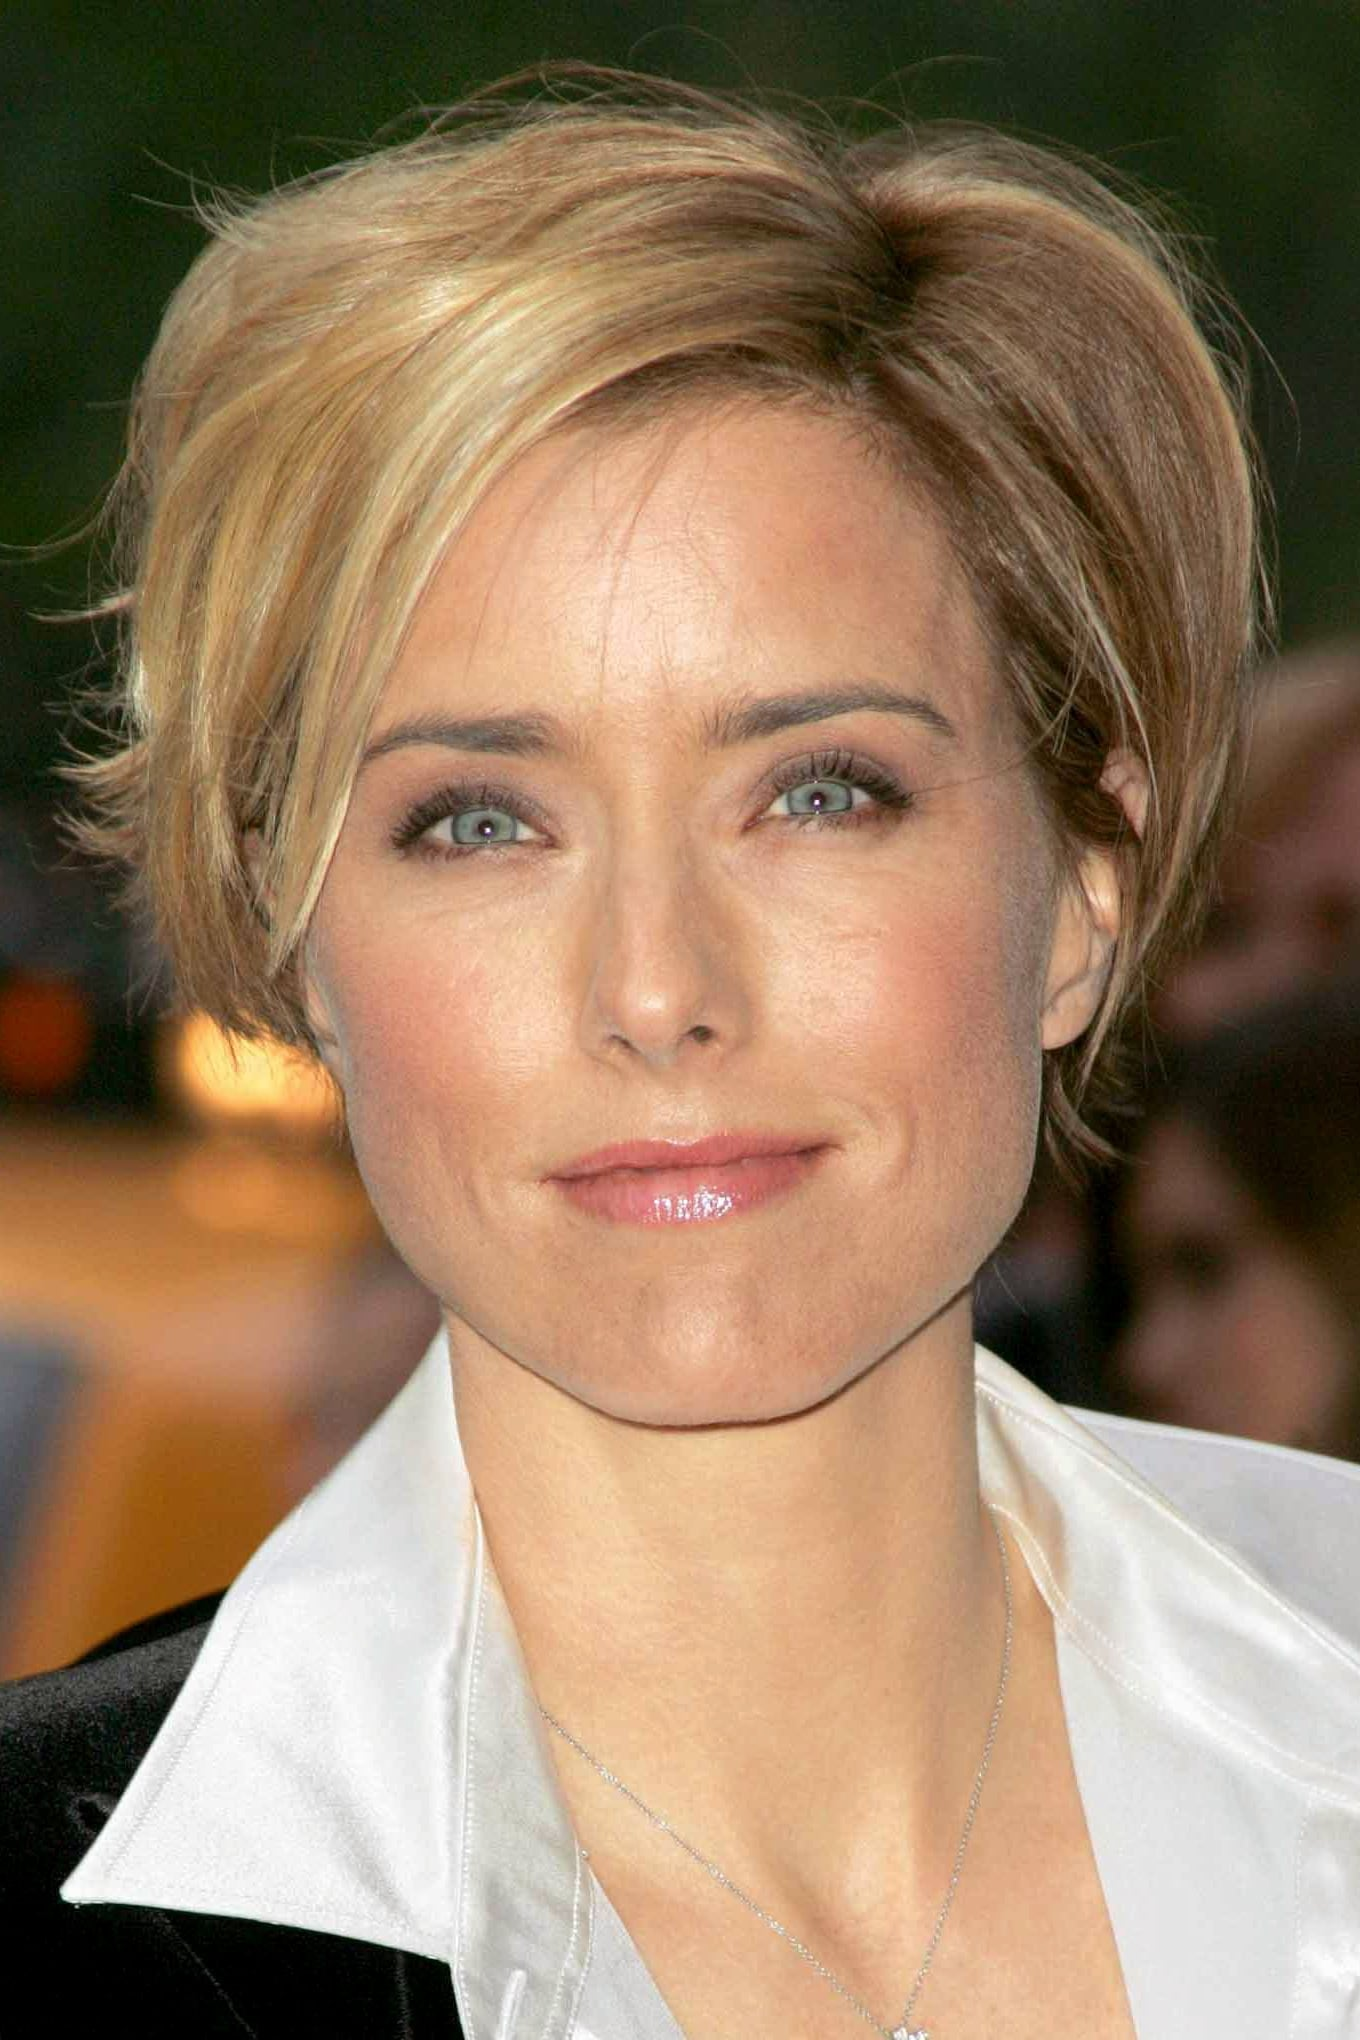 Téa Leoni - Movies, TV Shows & Age - Biography